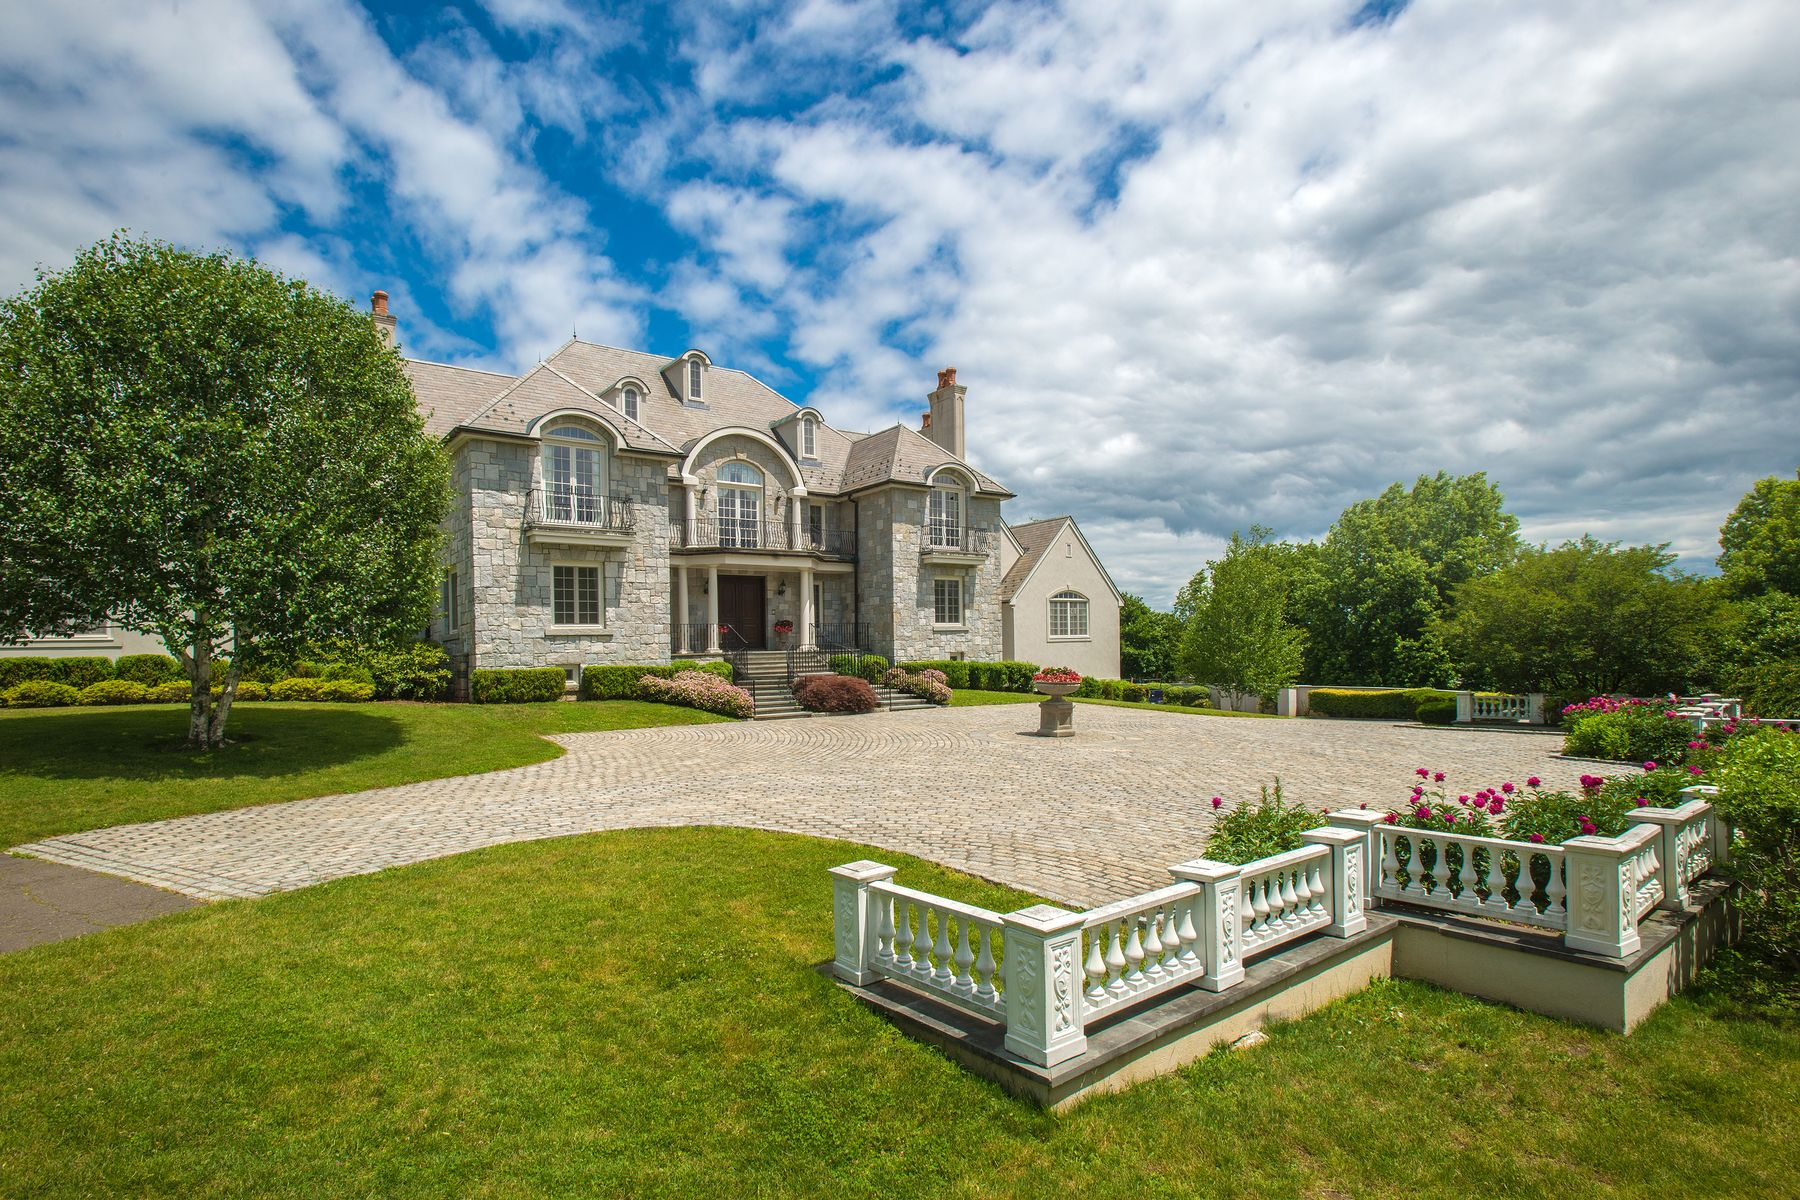 Single Family Homes for Sale at 7 Close Road Greenwich, Connecticut 06831 United States